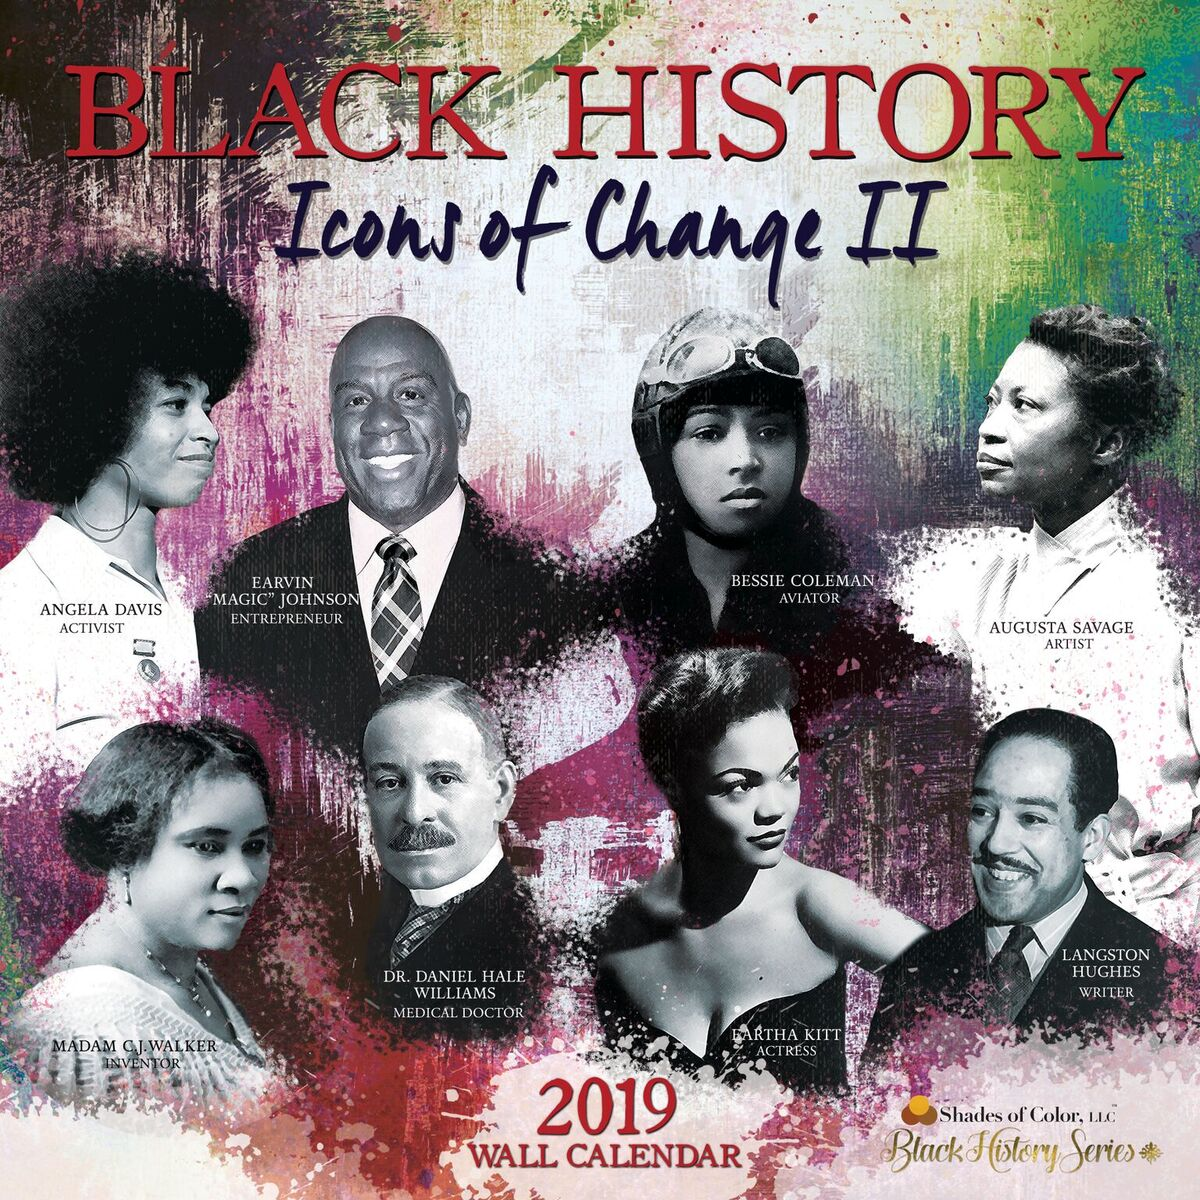 Black History Icons of Change Part 2